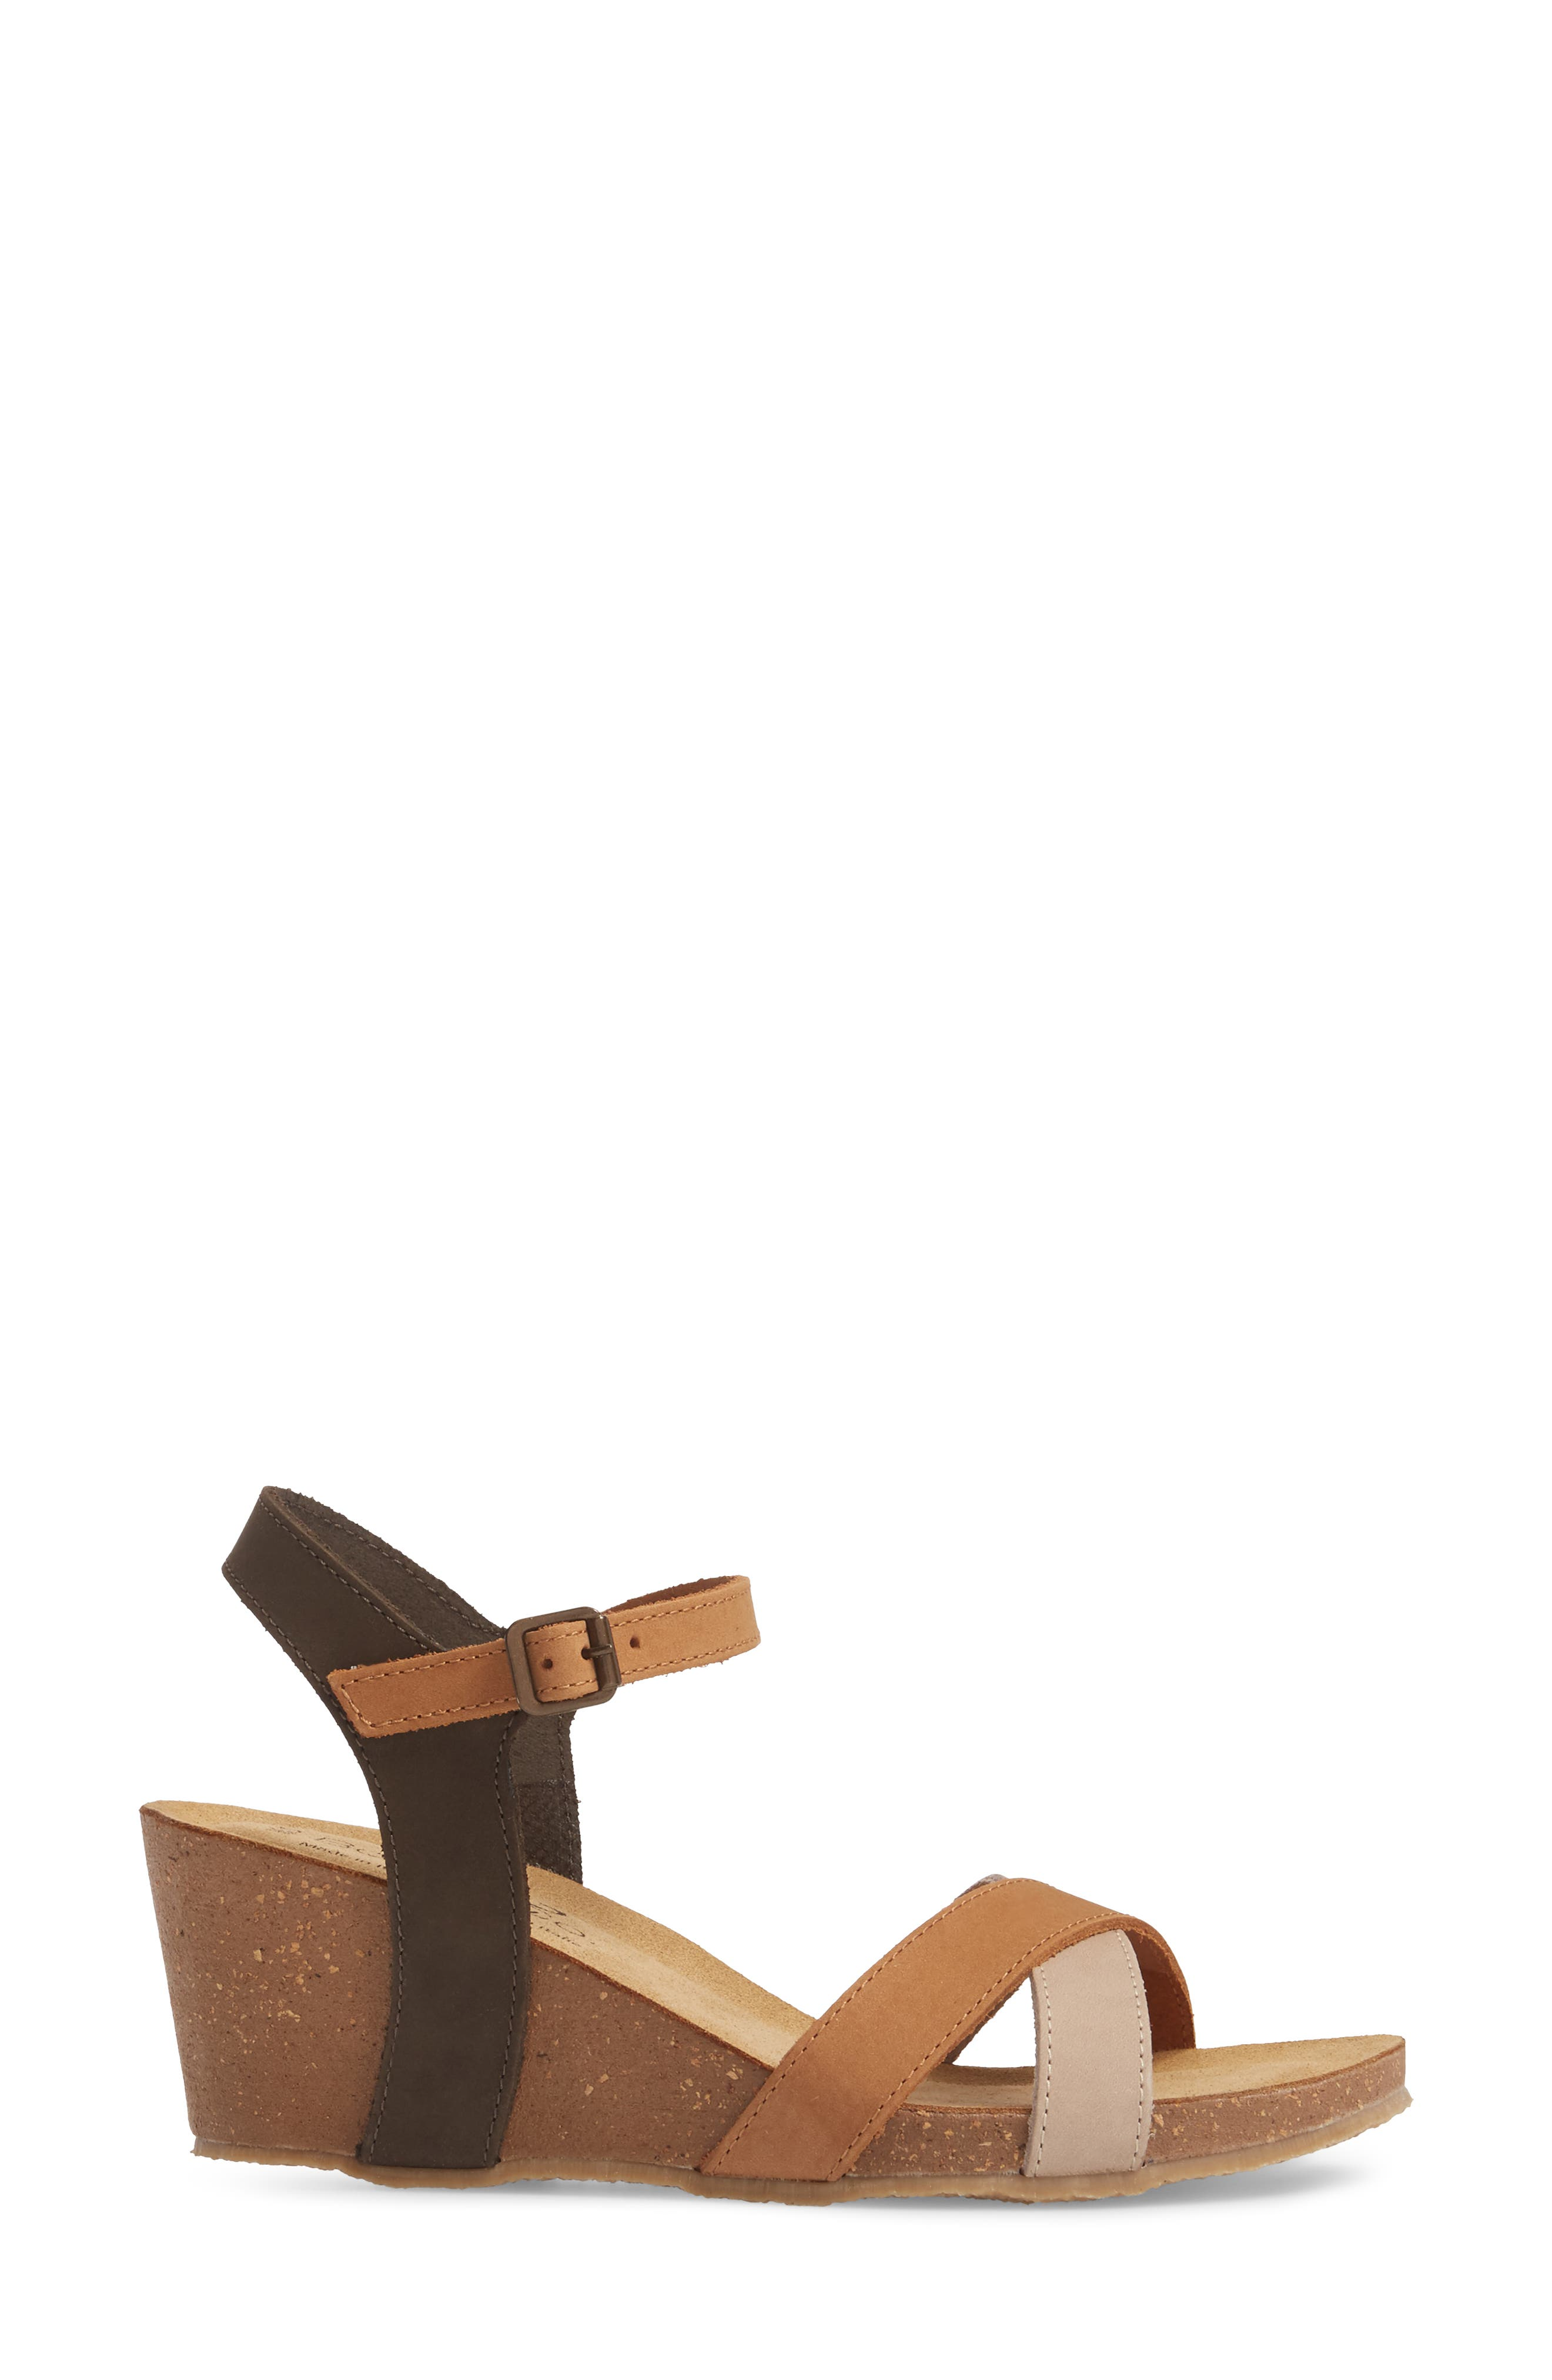 Lucca Wedge Sandal,                             Alternate thumbnail 3, color,                             Multi Cognac Nubuck Leather